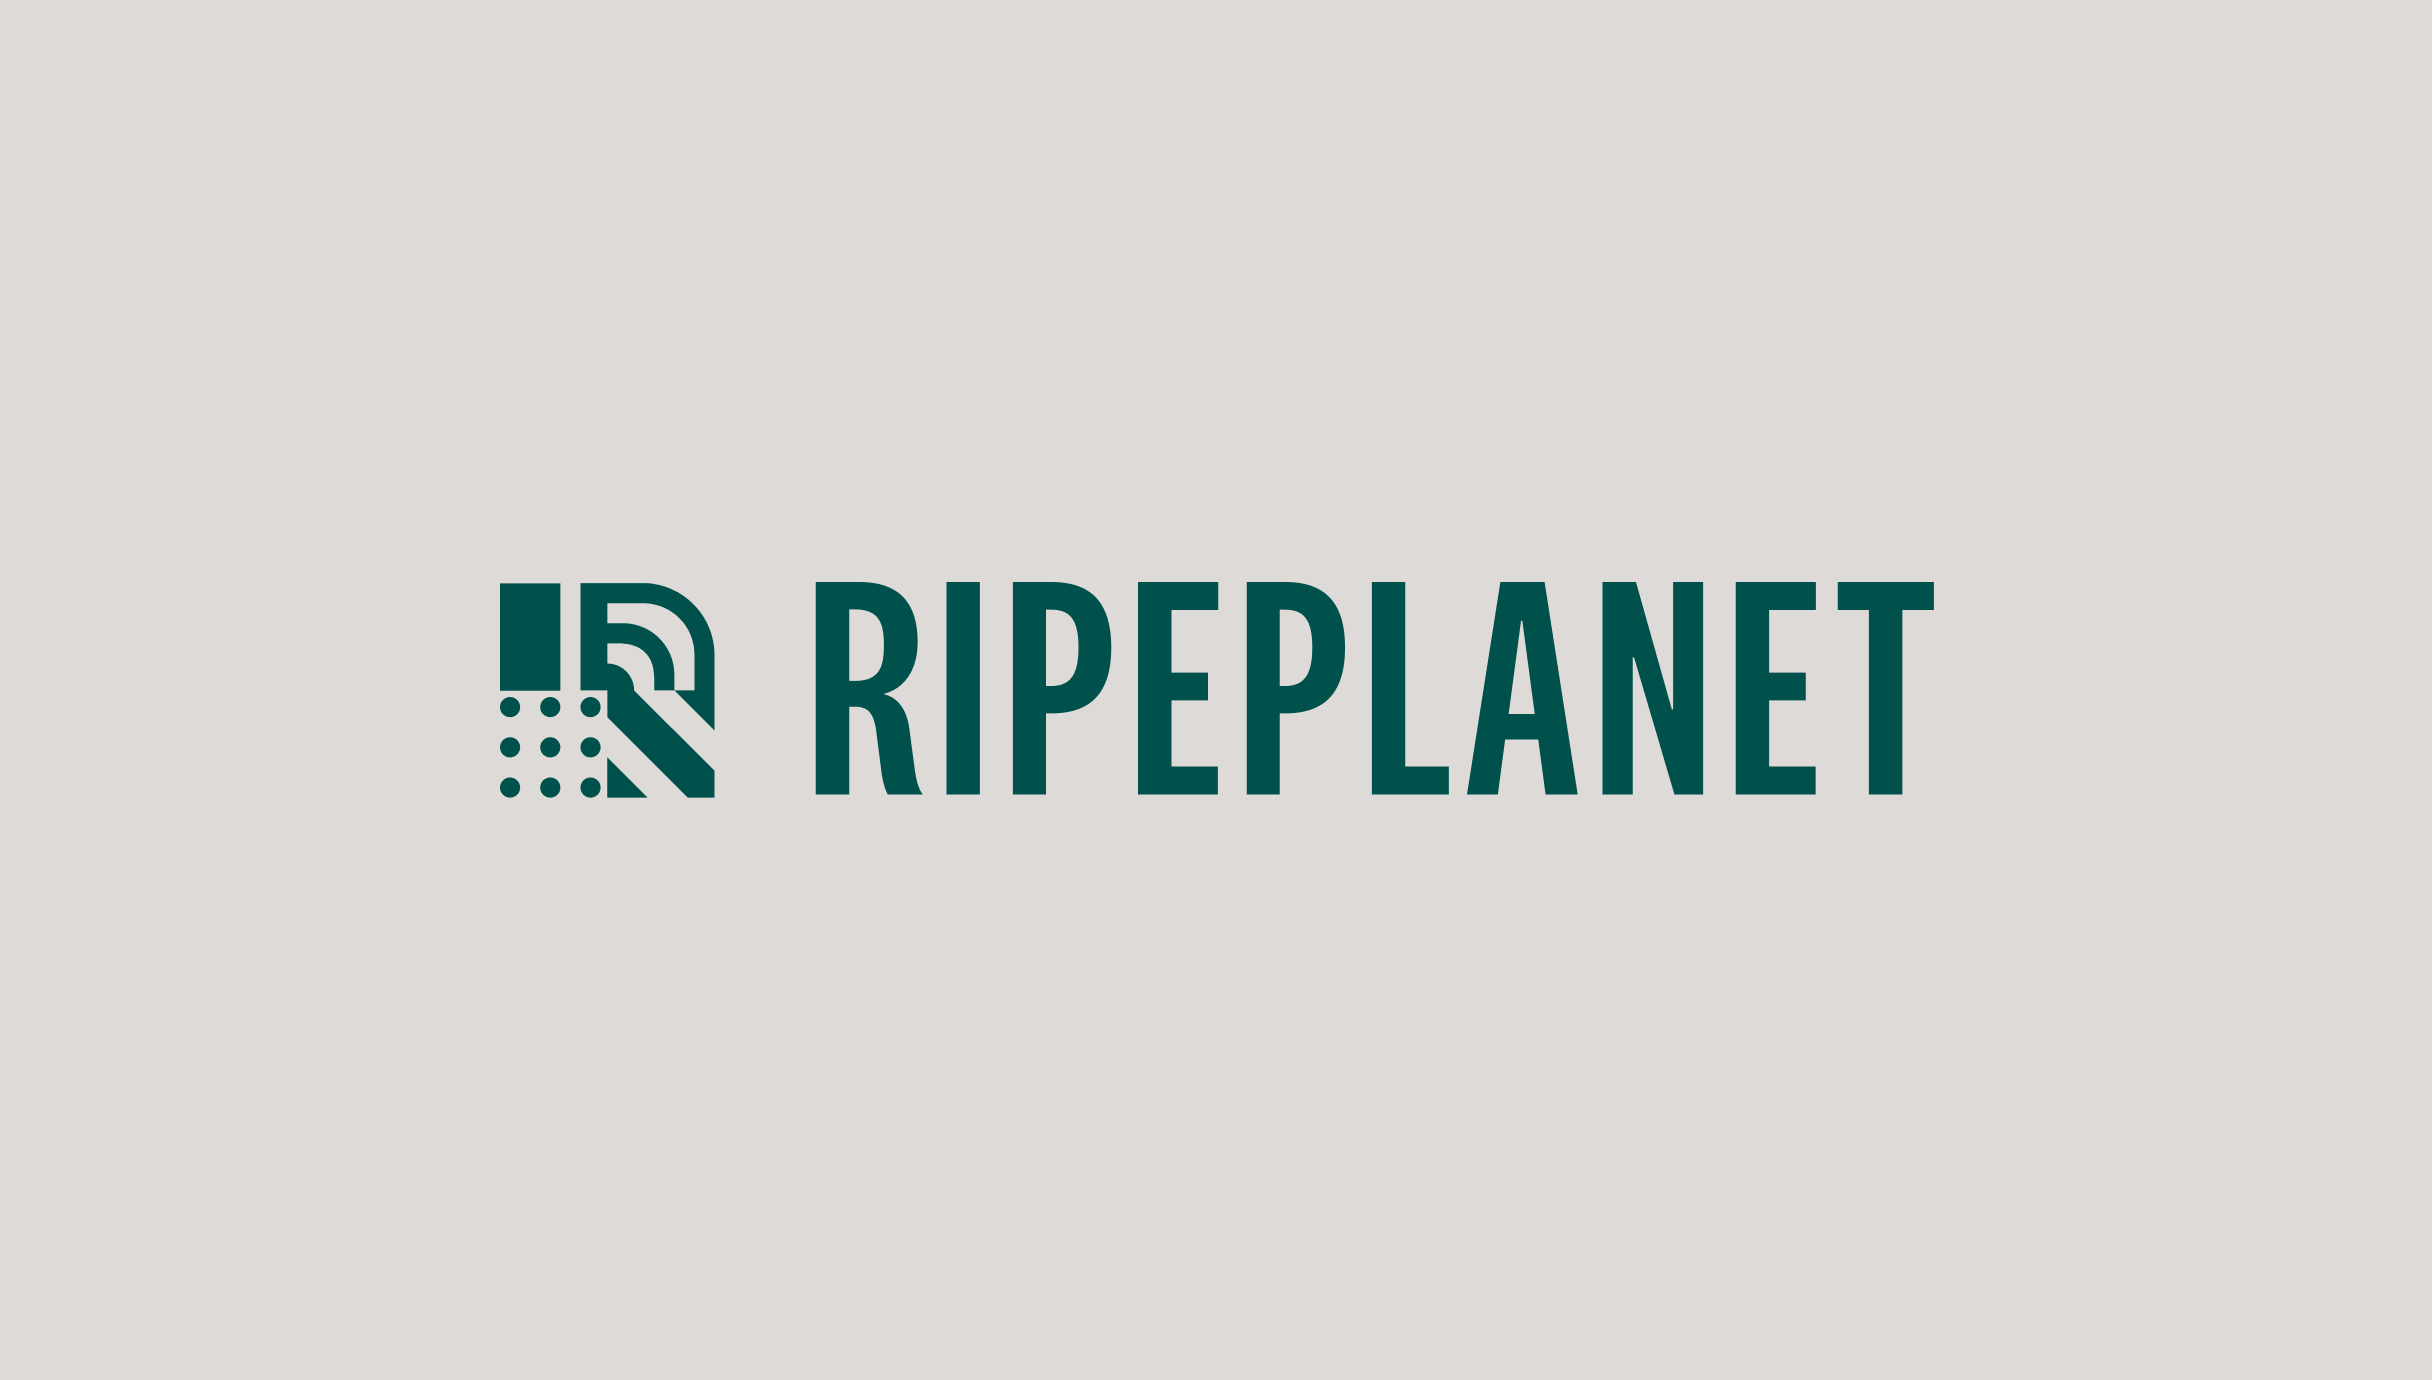 New Ripe Planet brand and logo